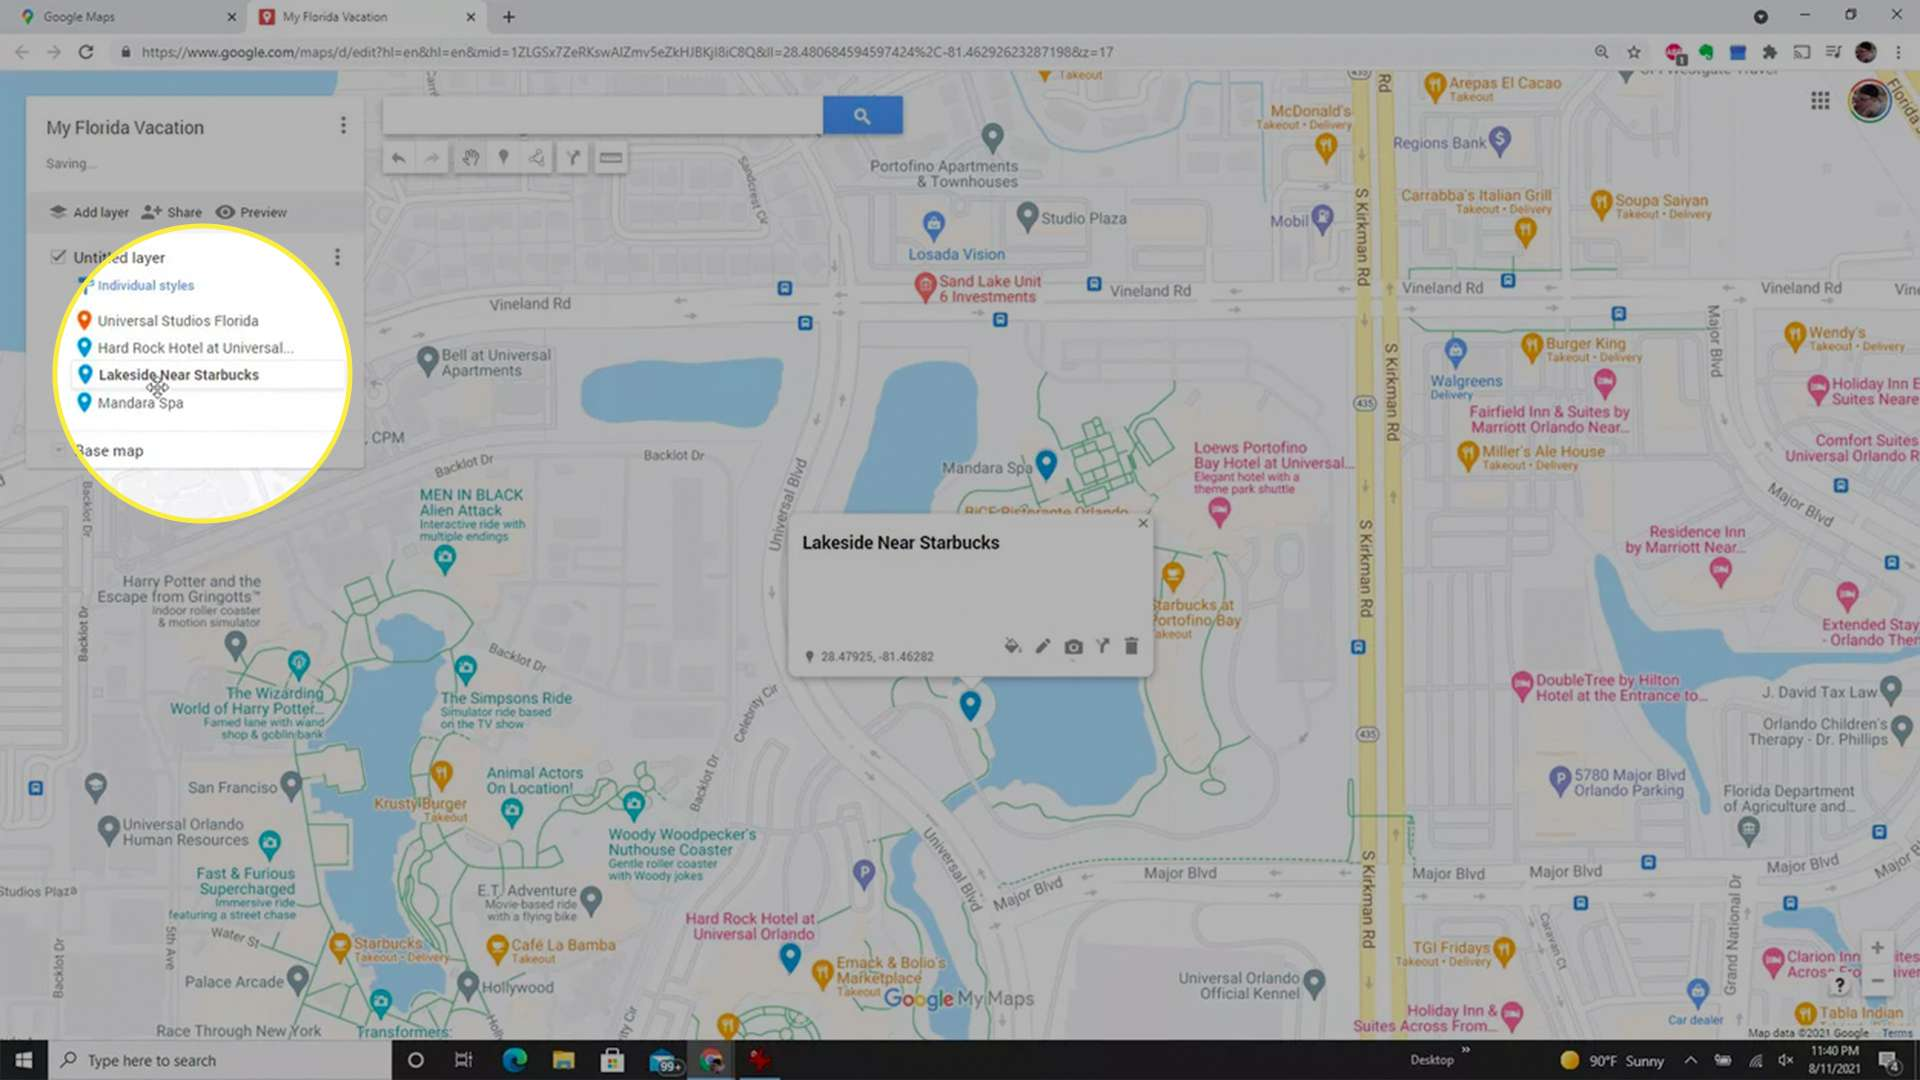 Ordering locations in a custom Google Maps map.